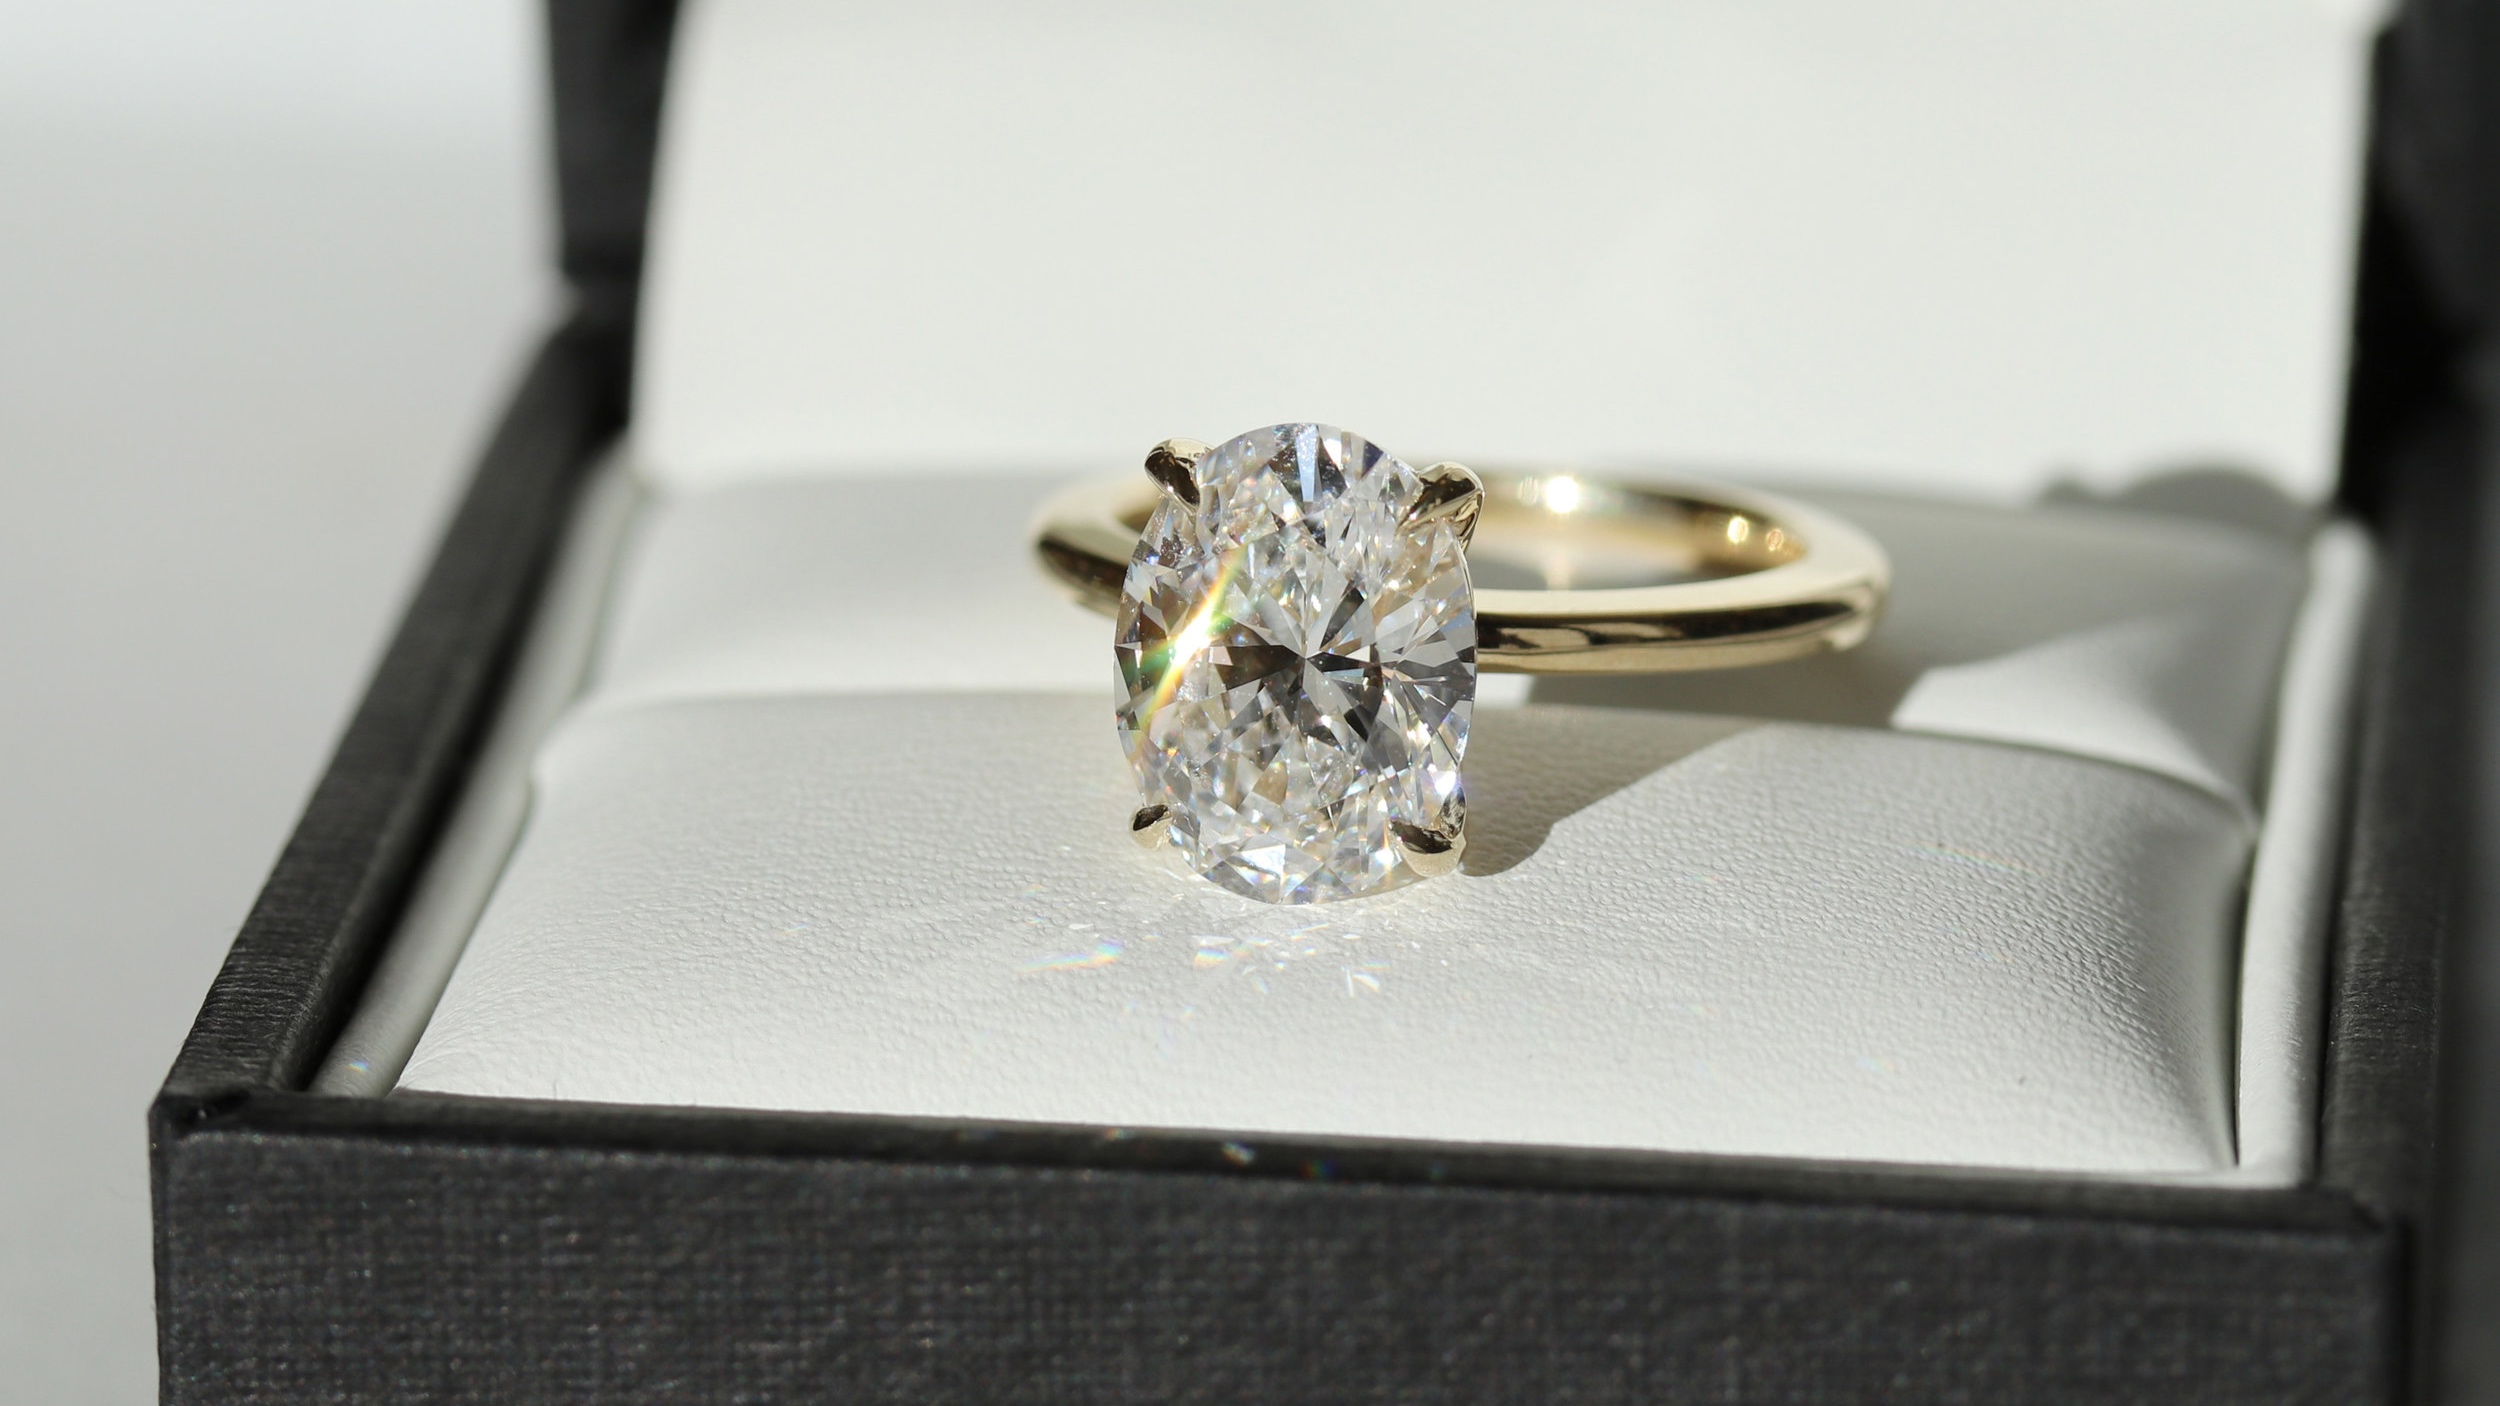 Finished Four Prong Solitaire featuring a 2.51ct Oval Lab Diamond